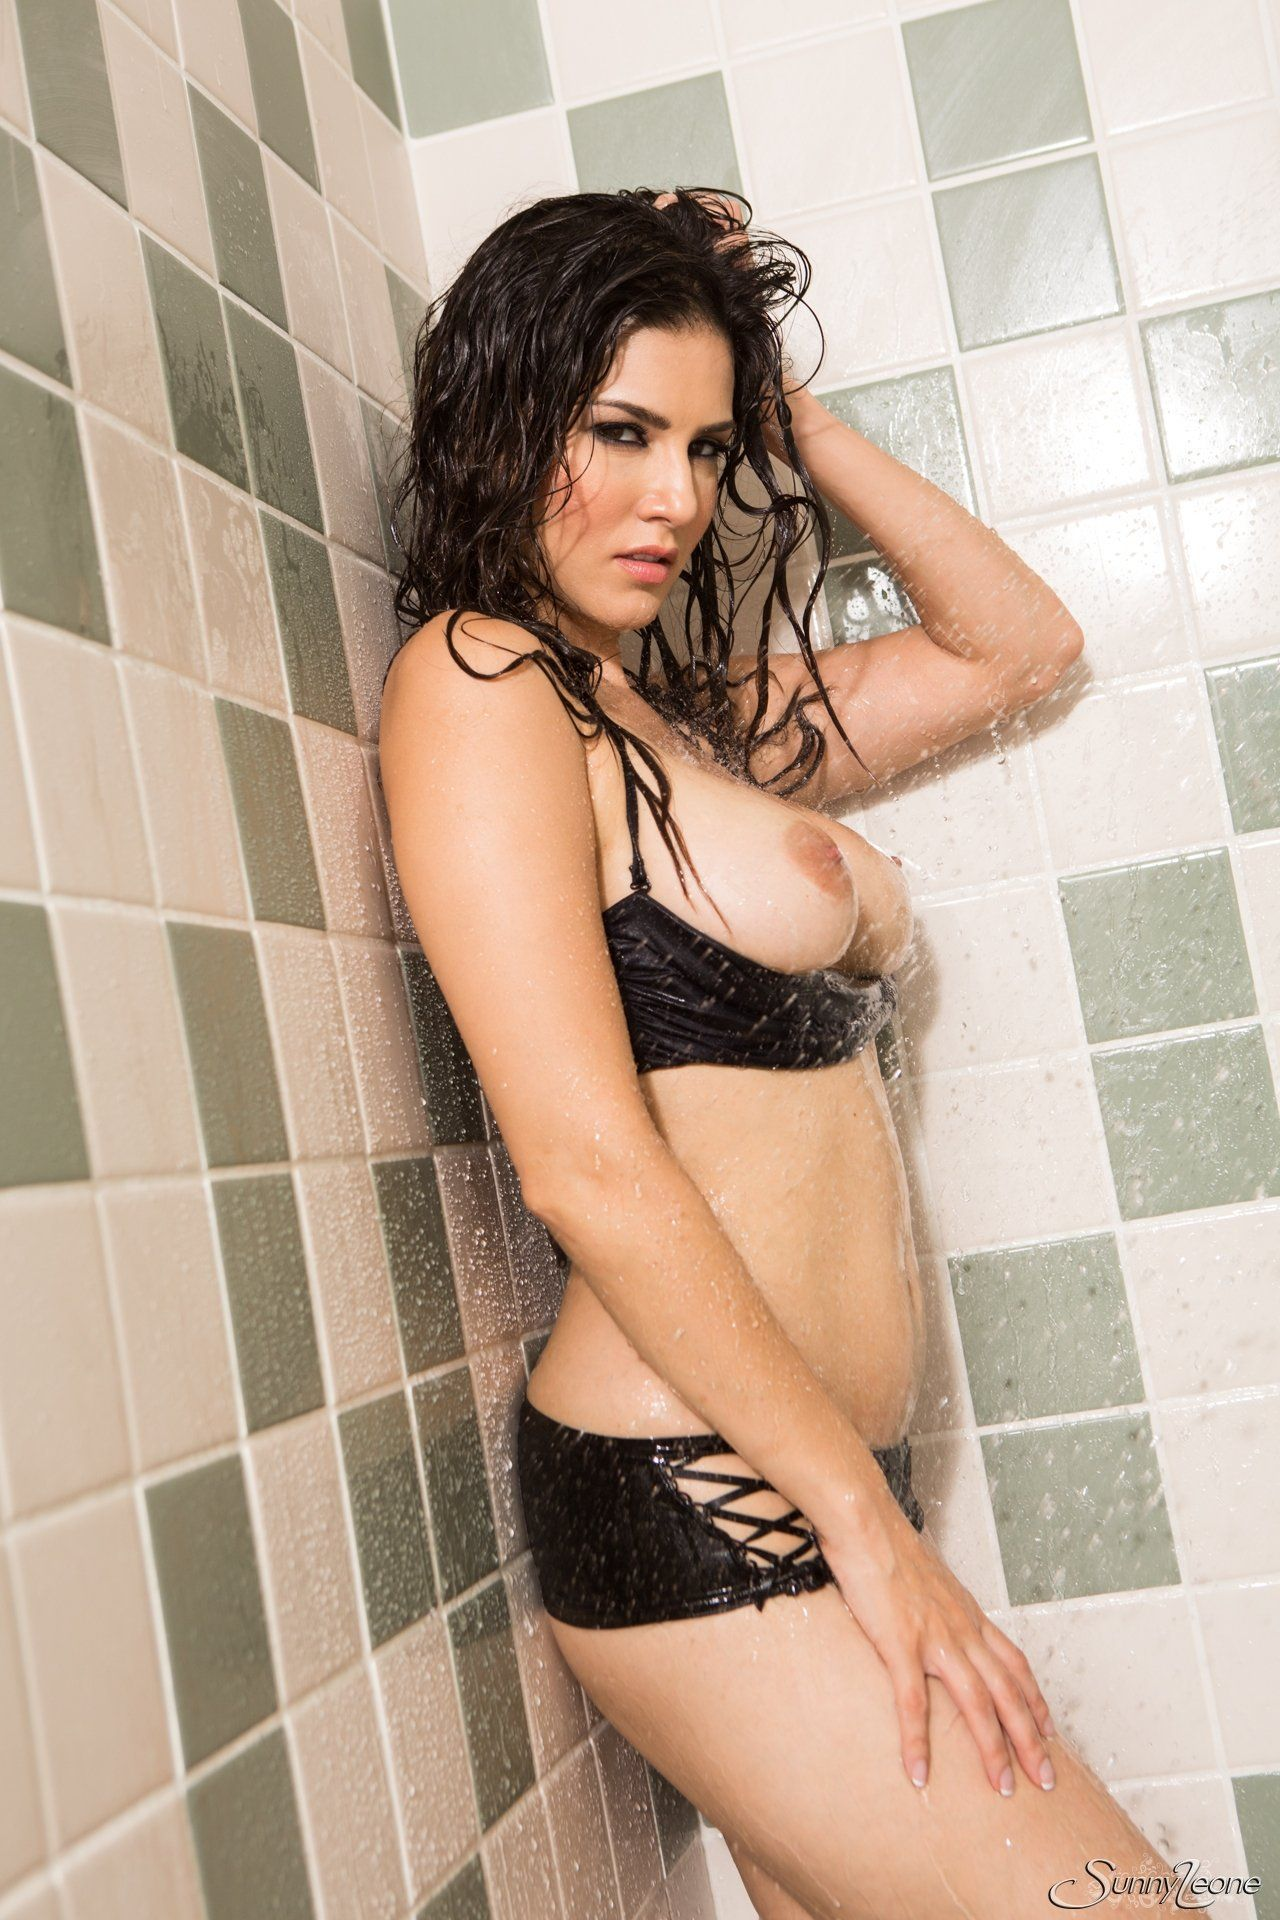 best of In Nude sunny bath leone